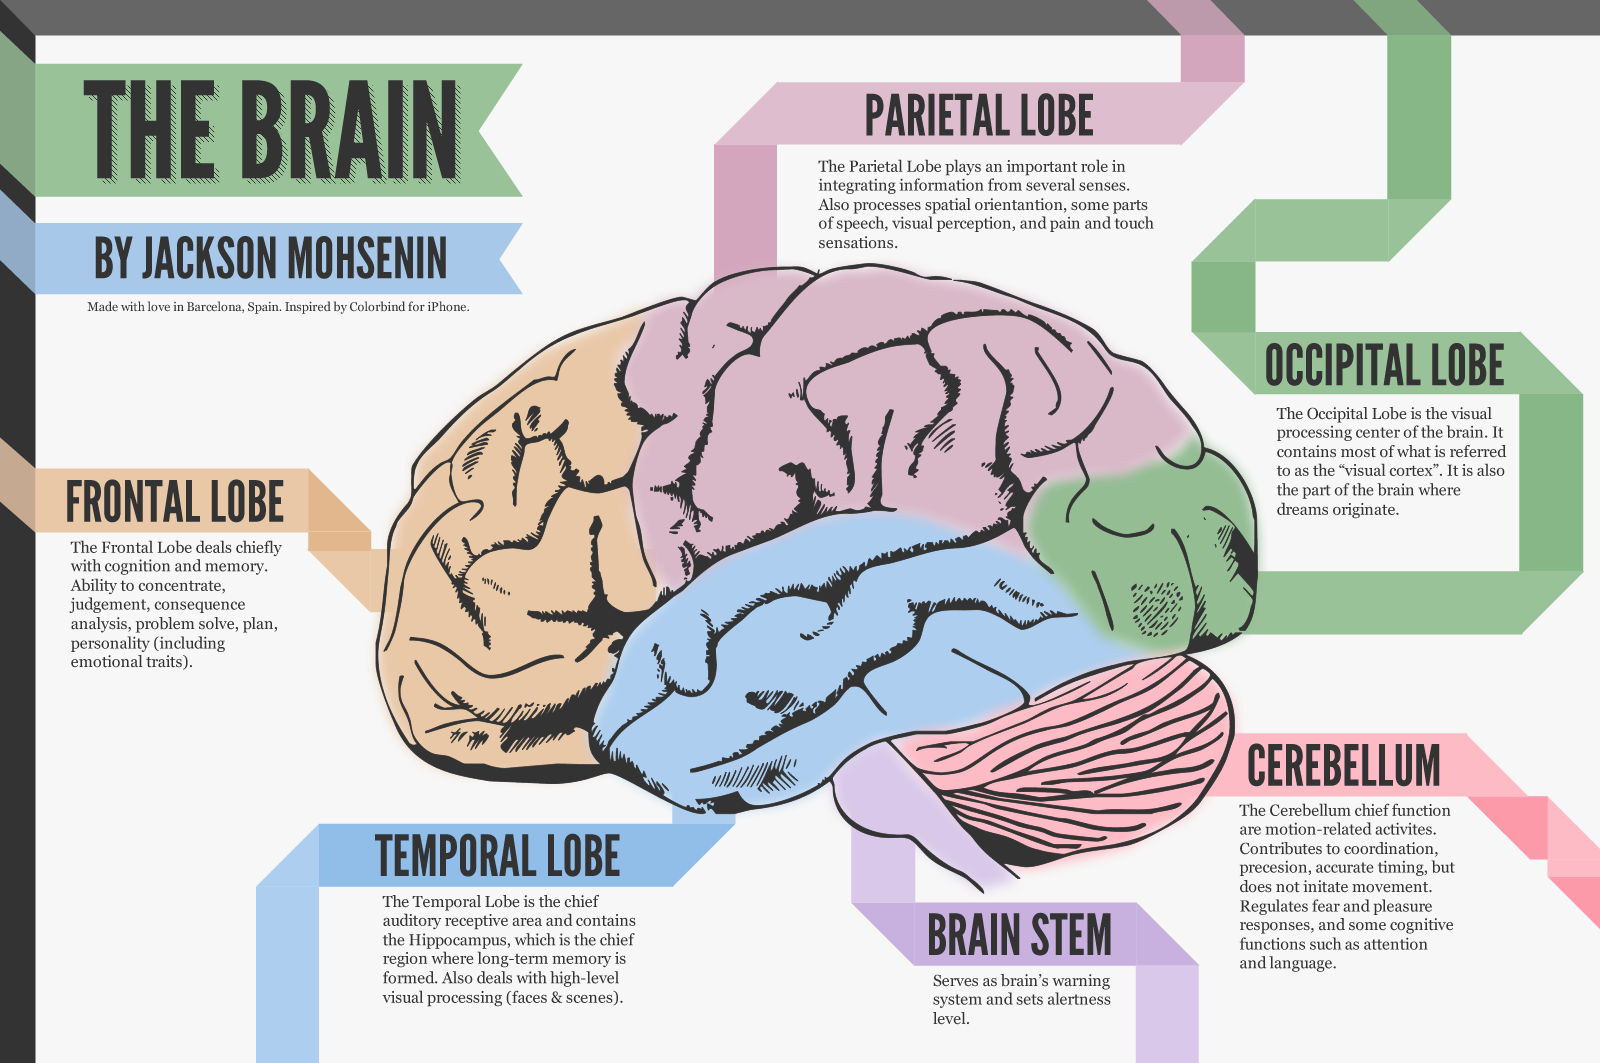 Human Brain Anatomy And Functions Photo 12